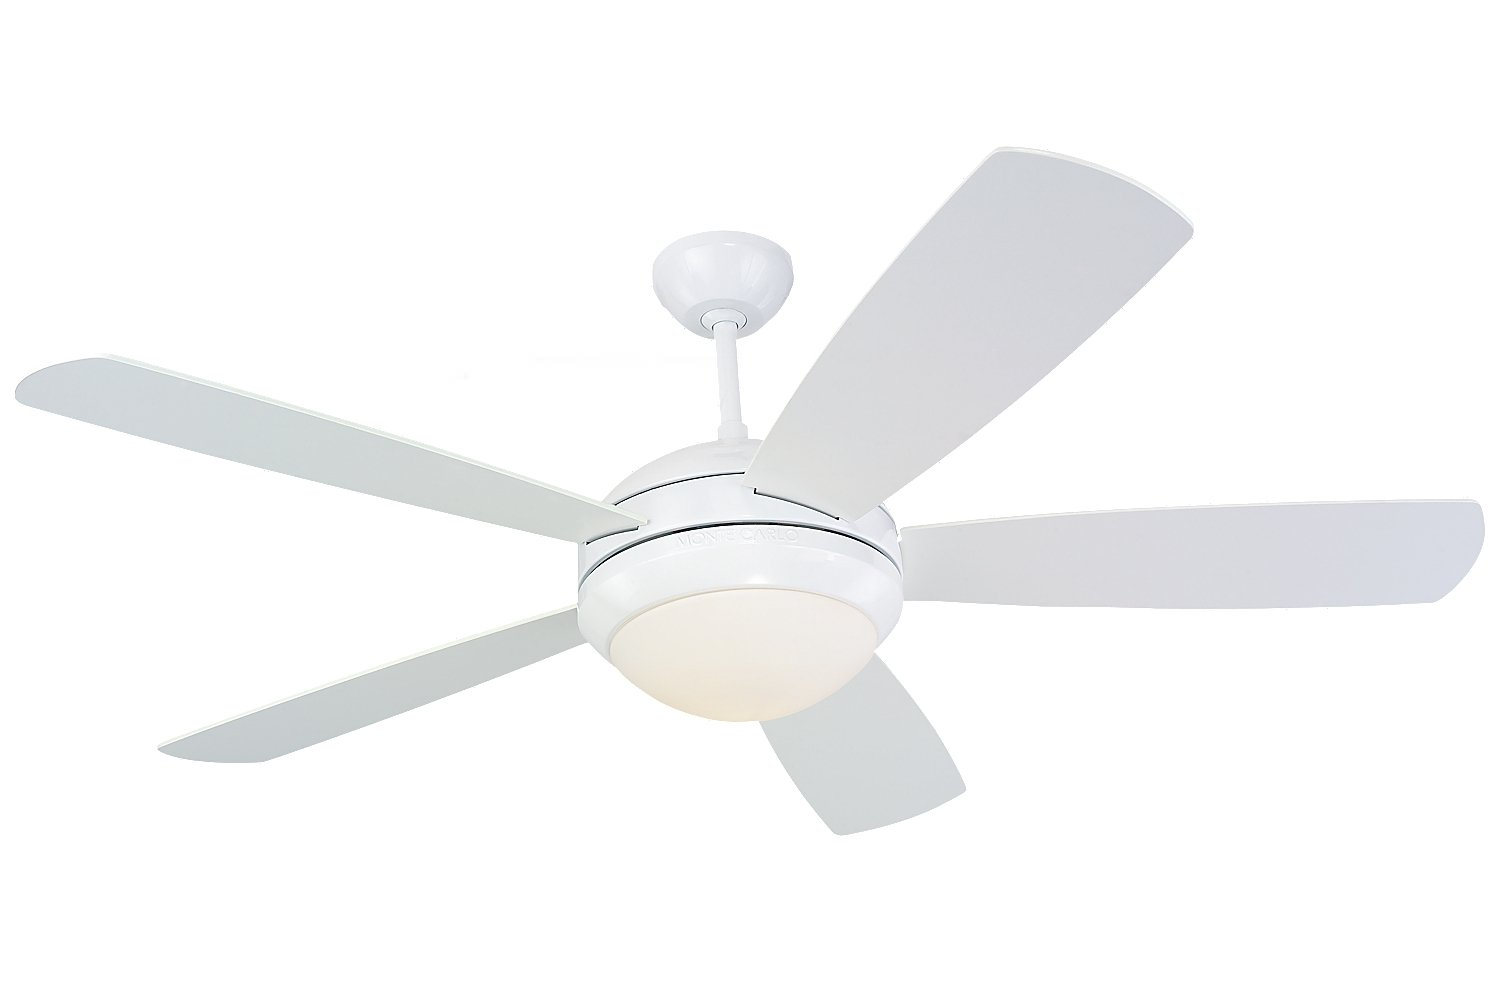 Monte carlo 5di52whd l discus 52 ceiling fan white amazon publicscrutiny Image collections